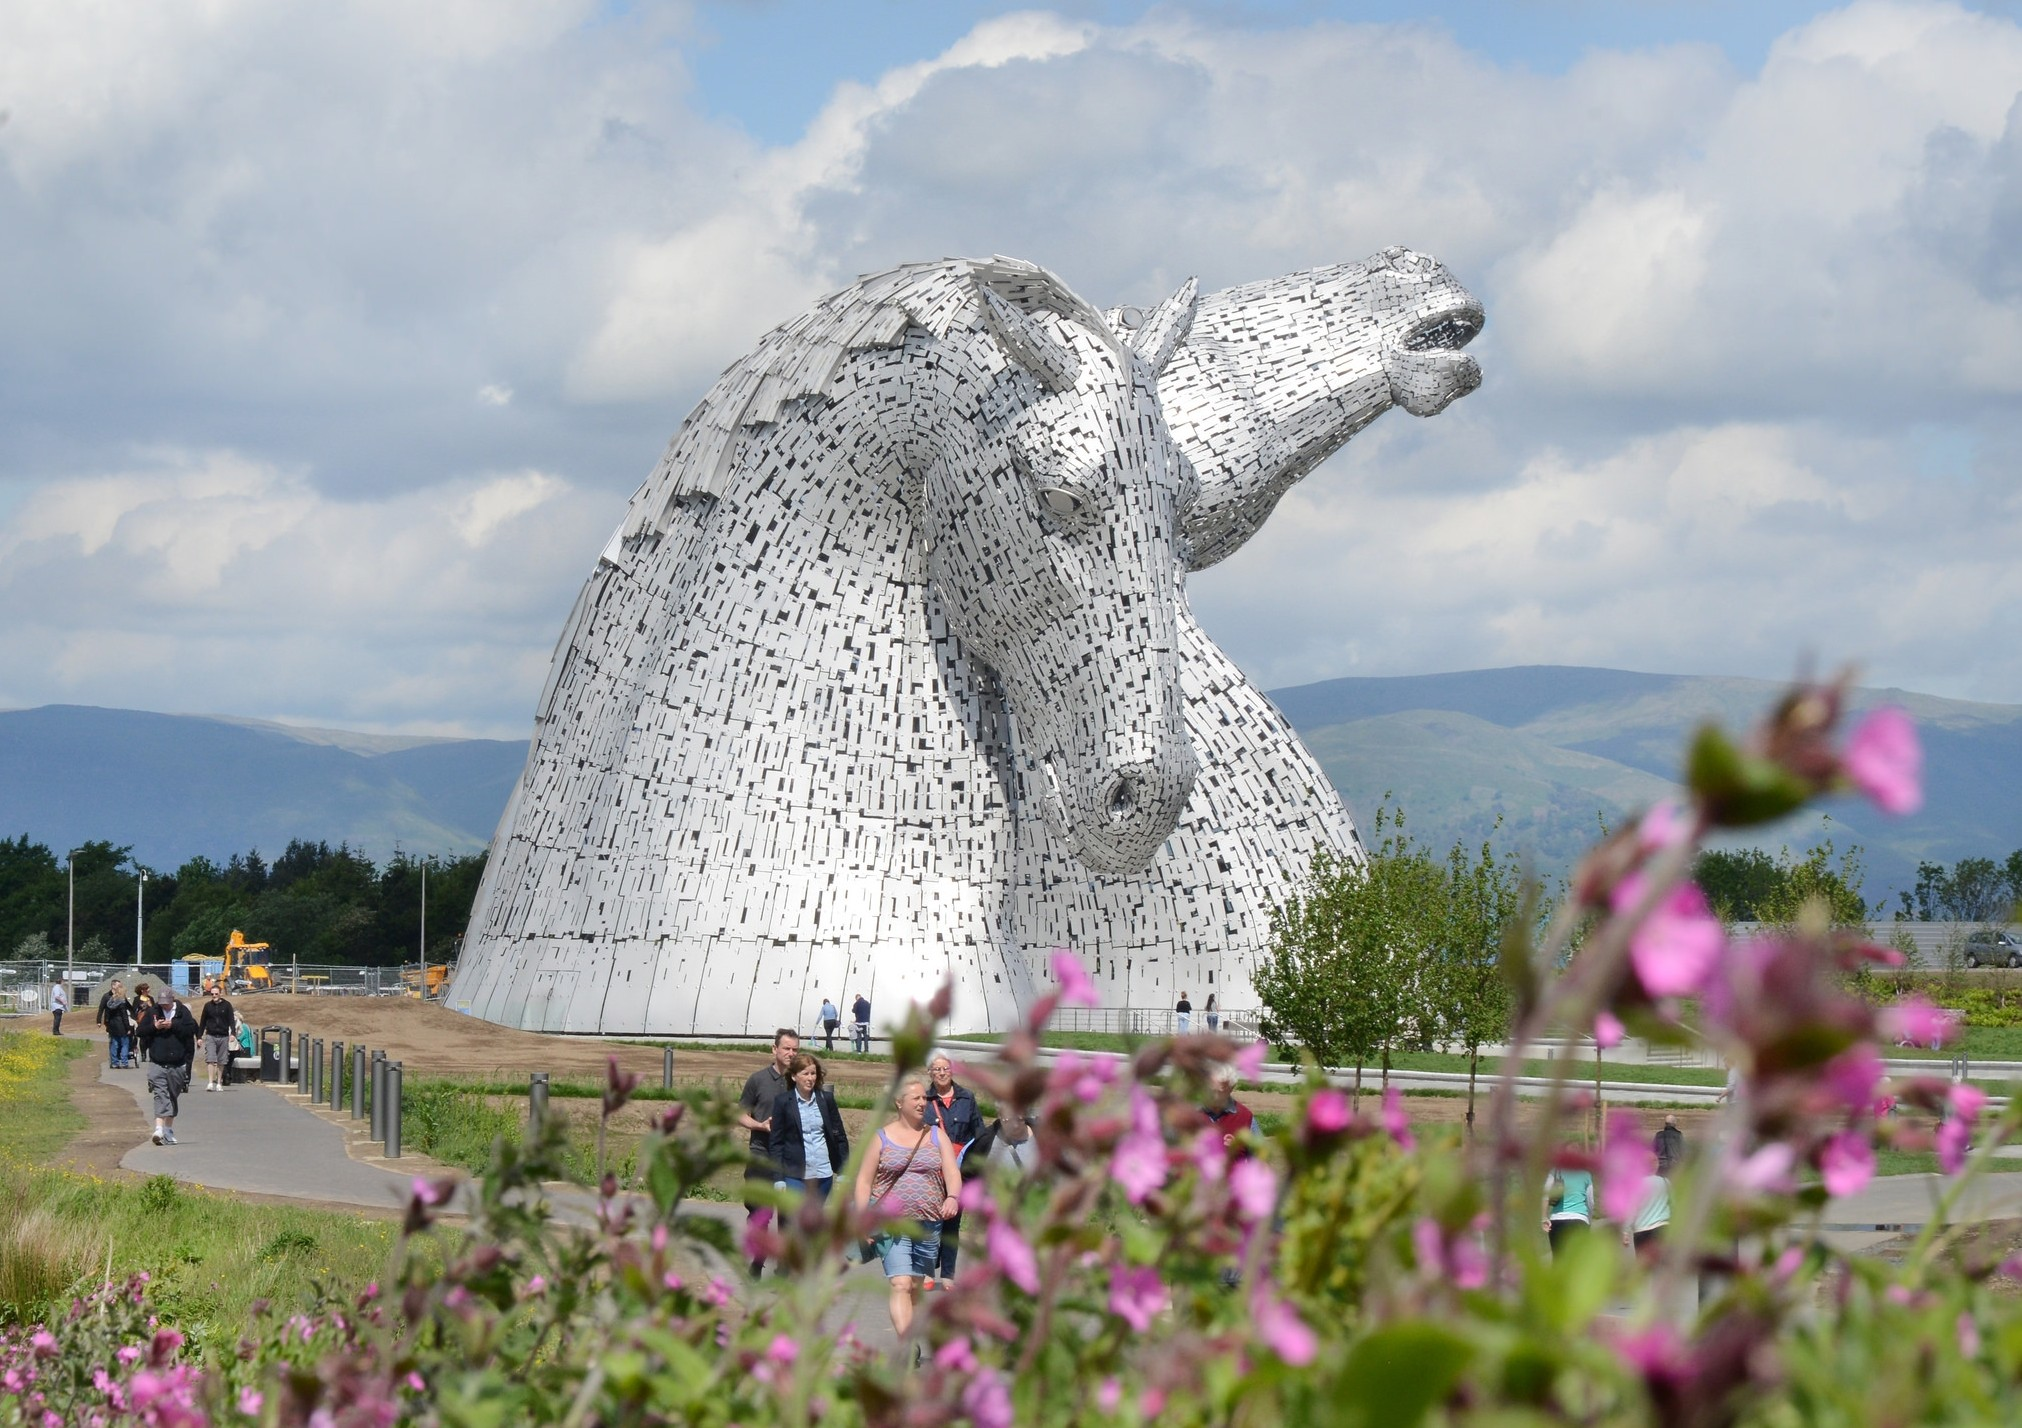 Visit the Kelpies - only a 10 minute drive!